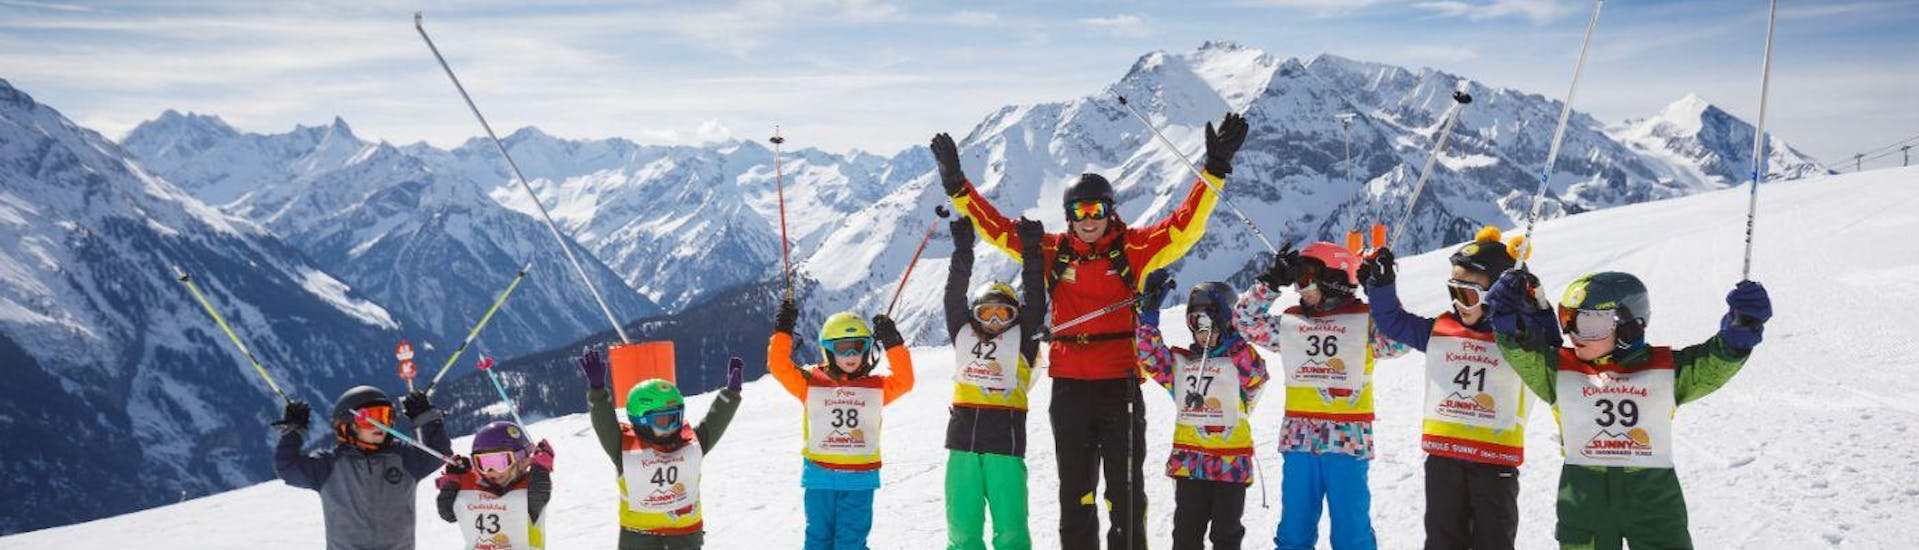 """Kids Ski Lessons """"All In One"""" (4-14 y.) for Advanced Skiers with Skischule Sunny Finkenberg - Hero image"""